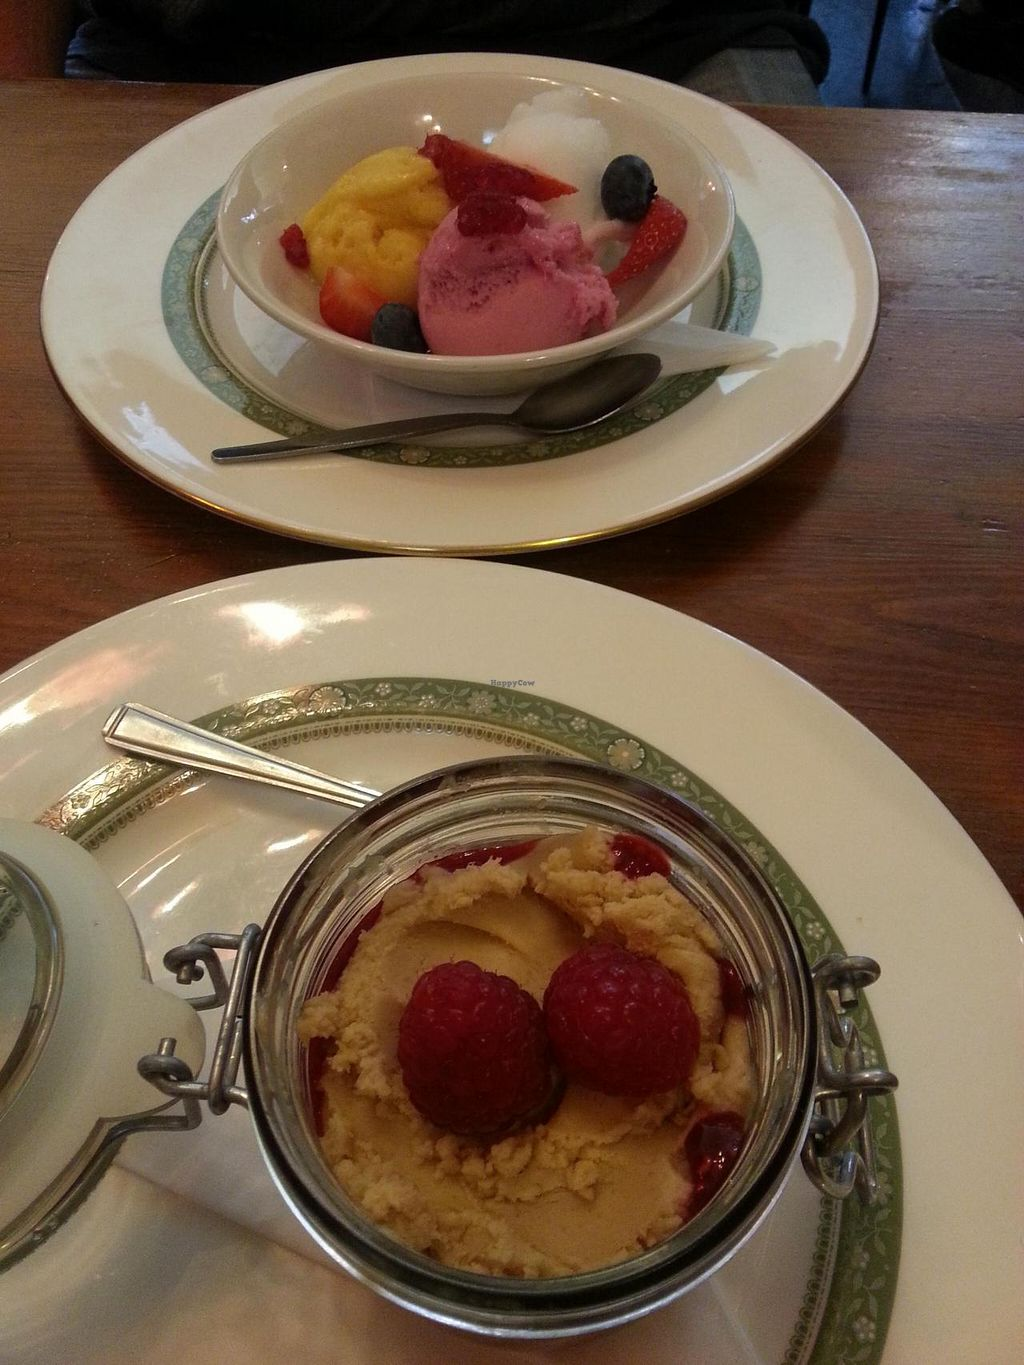 """Photo of Norman's Coach and Horses  by <a href=""""/members/profile/Miggi"""">Miggi</a> <br/>3 sorbets - champagne, mango n passionfruit, mixed berry. And peanutbutter mouse with raspberry coulis. All vegan <br/> July 9, 2014  - <a href='/contact/abuse/image/33232/73600'>Report</a>"""